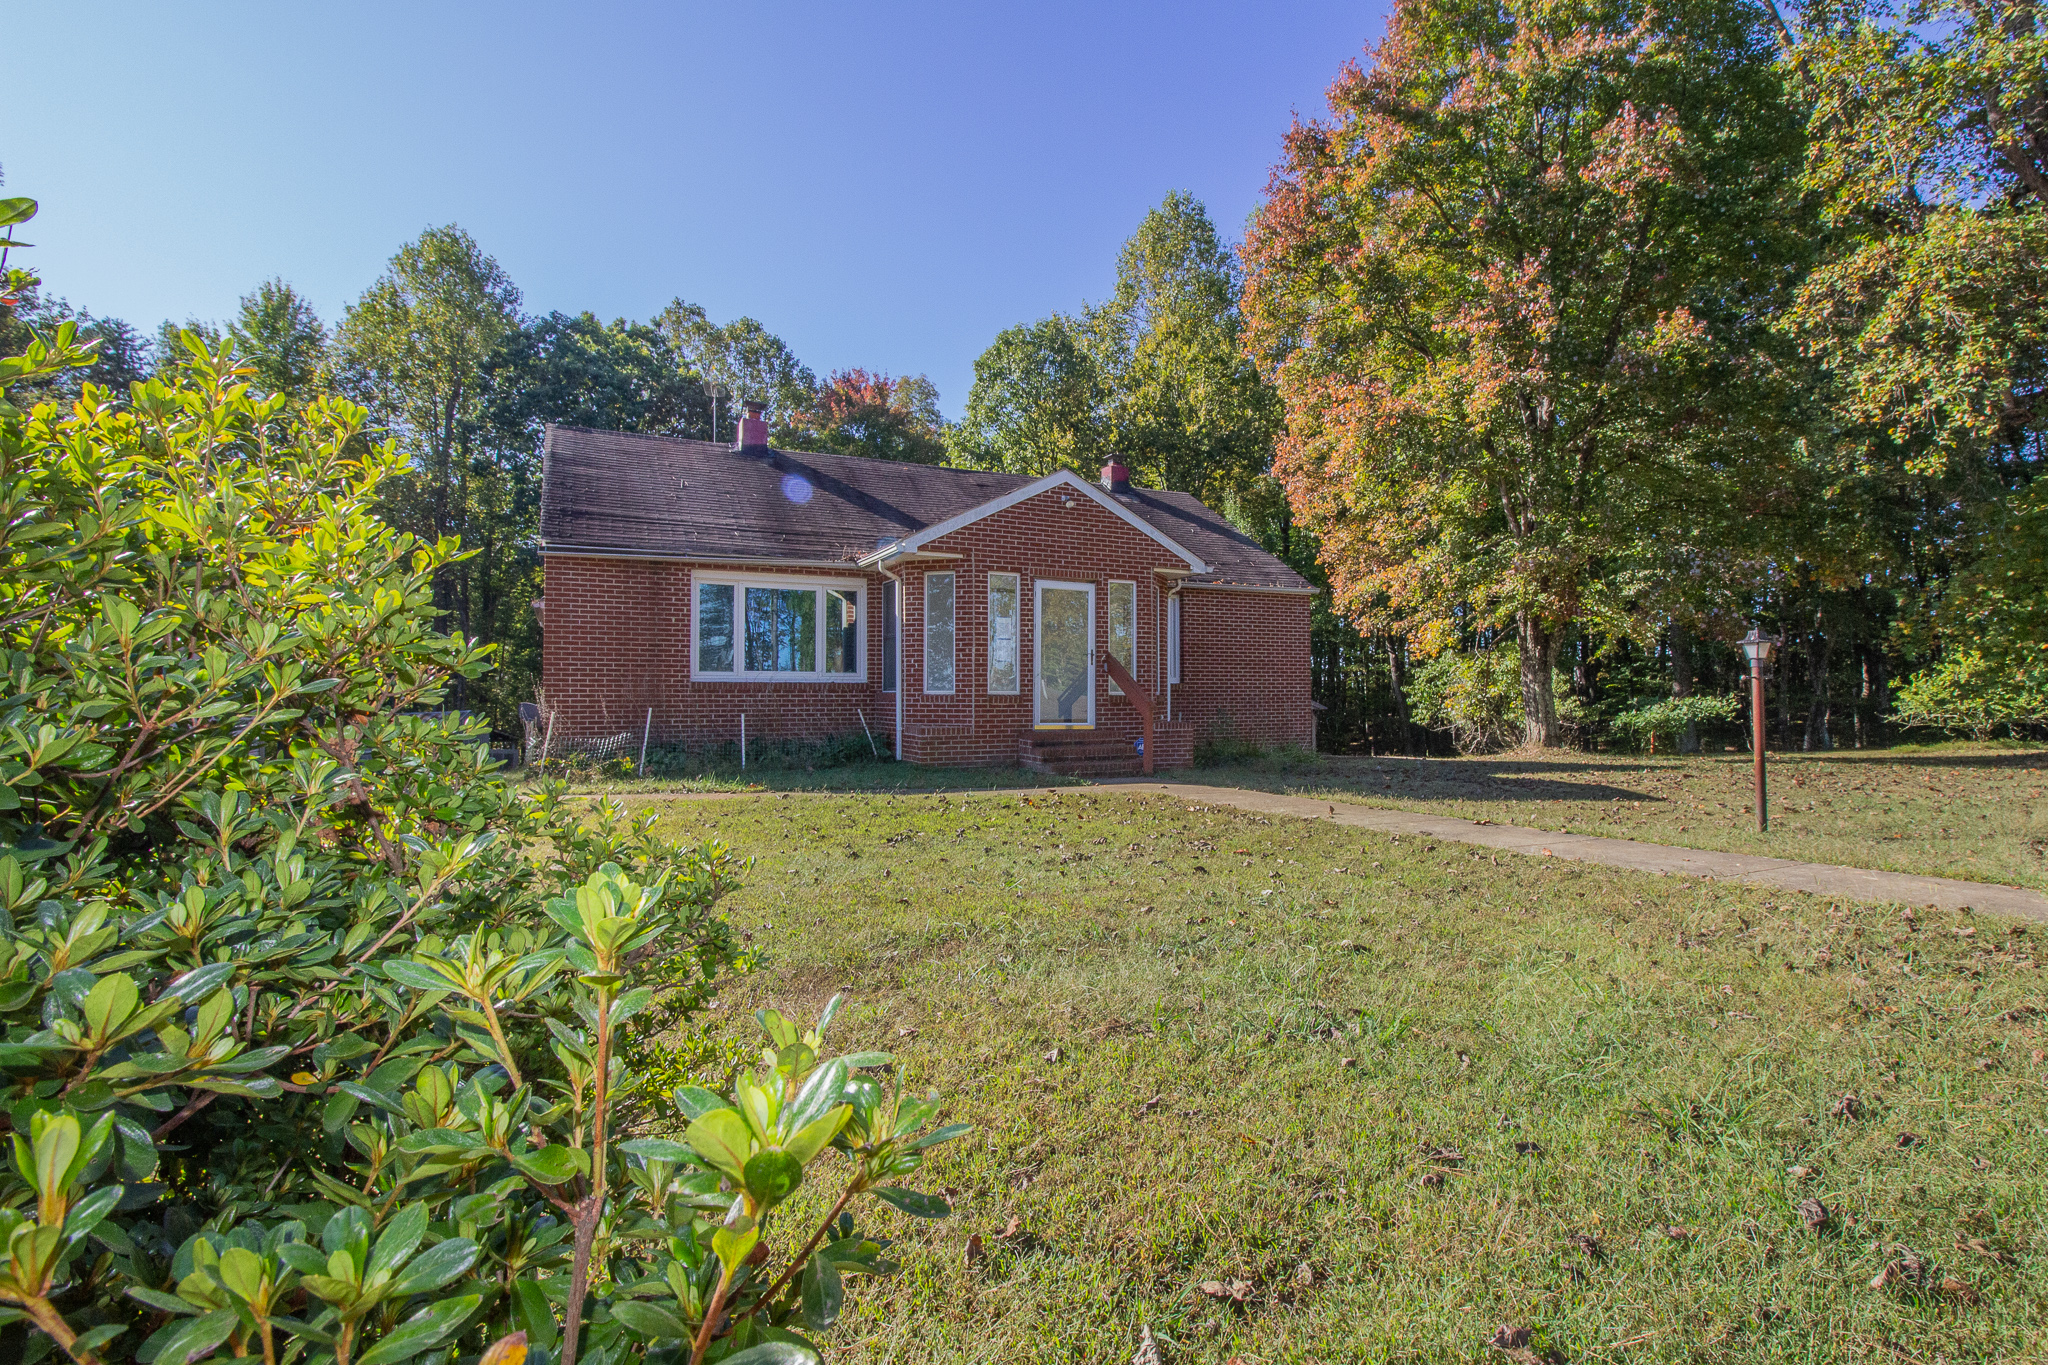 Home for Sale in Buckingham County